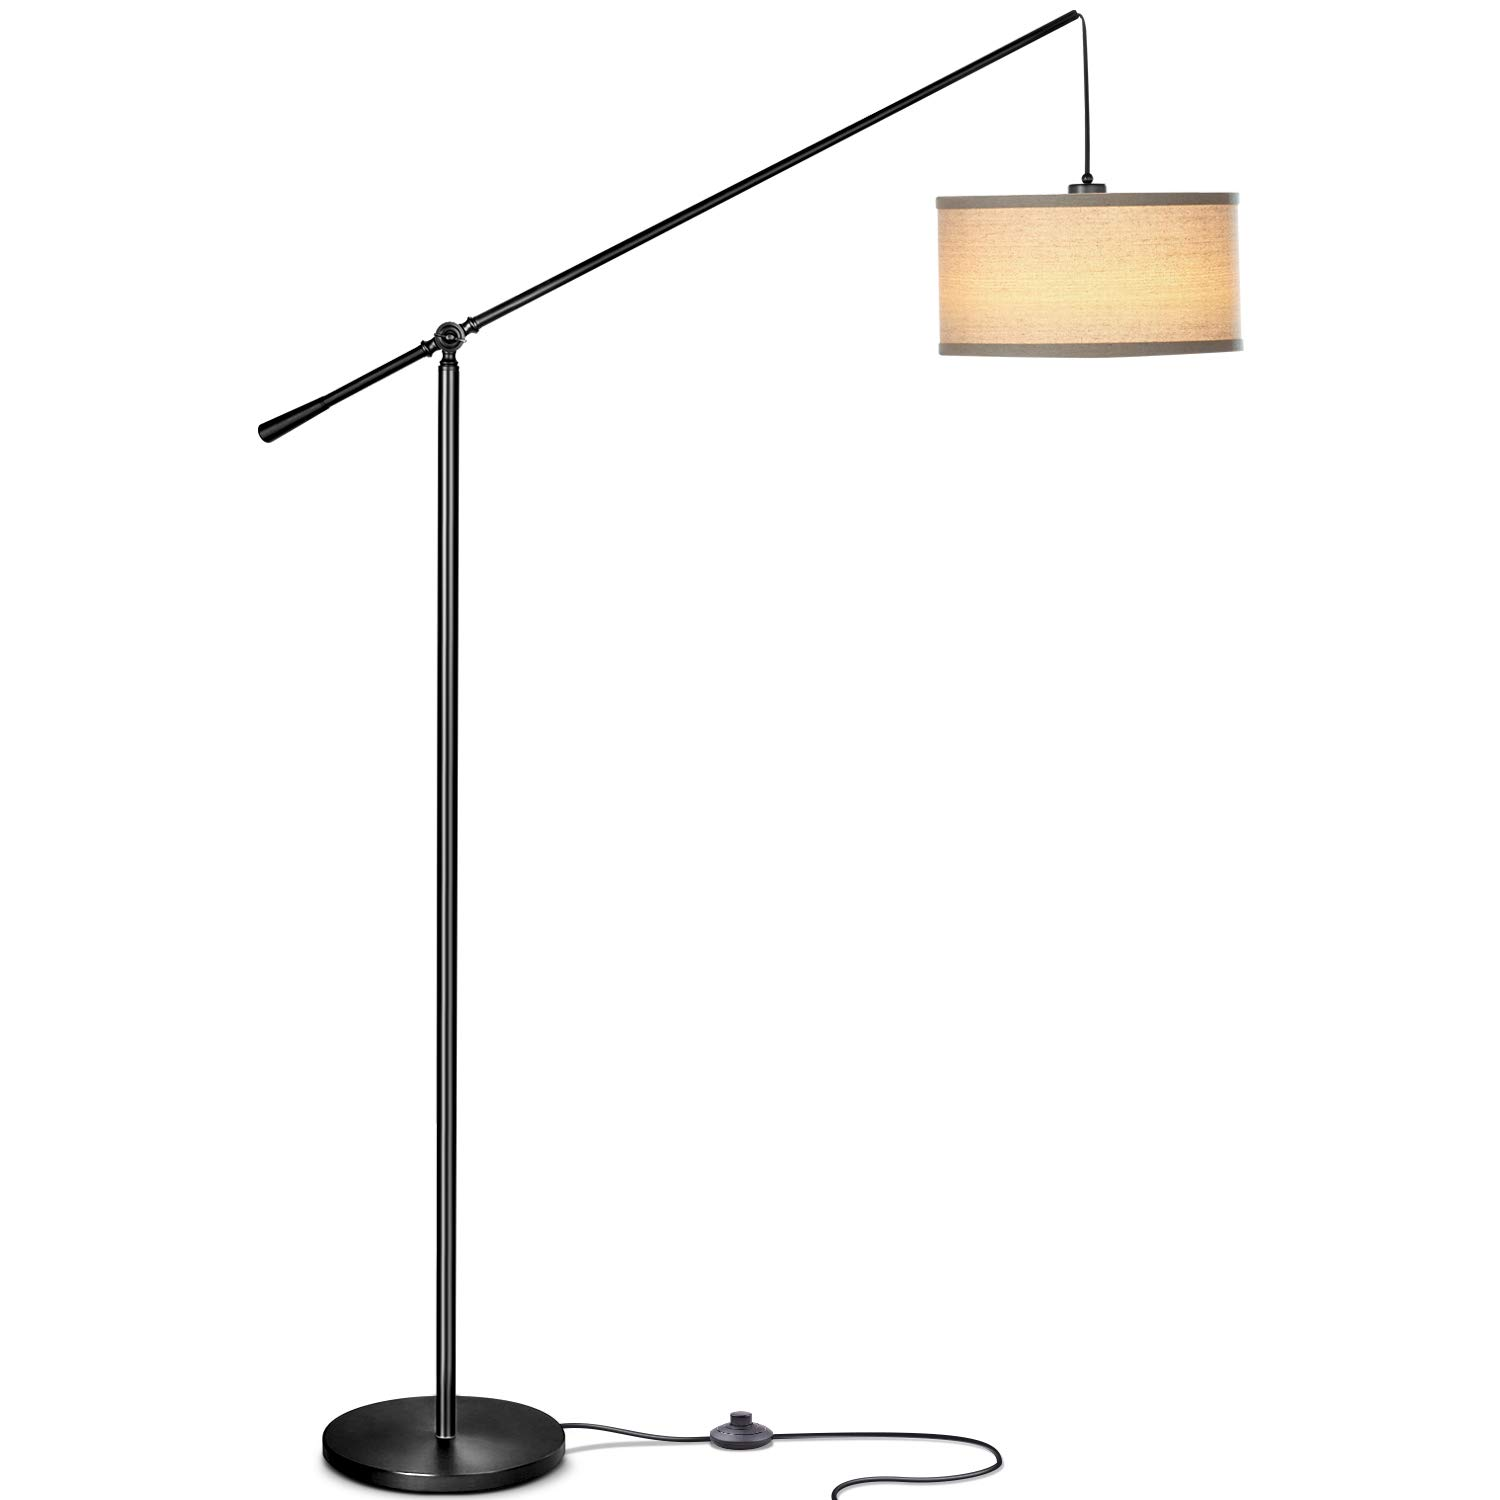 Brightech Hudson 2 - Living Room LED Arc Floor Lamp for Behind The Couch - Alexa Compatible Pole Hanging Light to Stand Up Over The Sofa - with LED Bulb - Jet Black